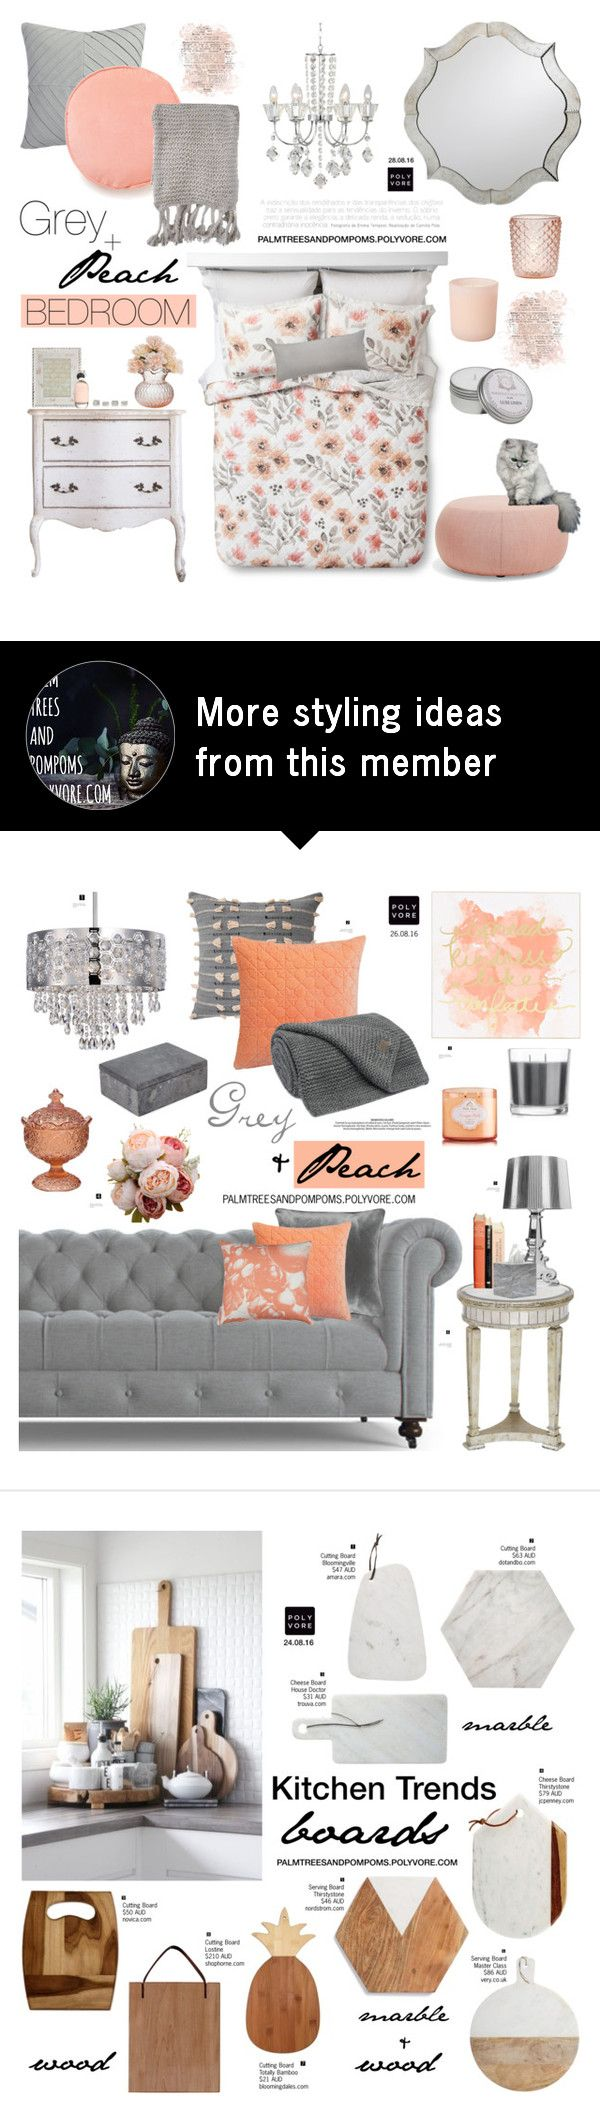 """""""Color Challenge: Gray & Peach / Watercolor Floral Quilt"""" by palmtreesandpompoms on Polyvore featuring interior, interiors, interior design, home, home decor, interior decorating, Threshold, CB2, Vienna Full Spectrum and Dot & Bo"""